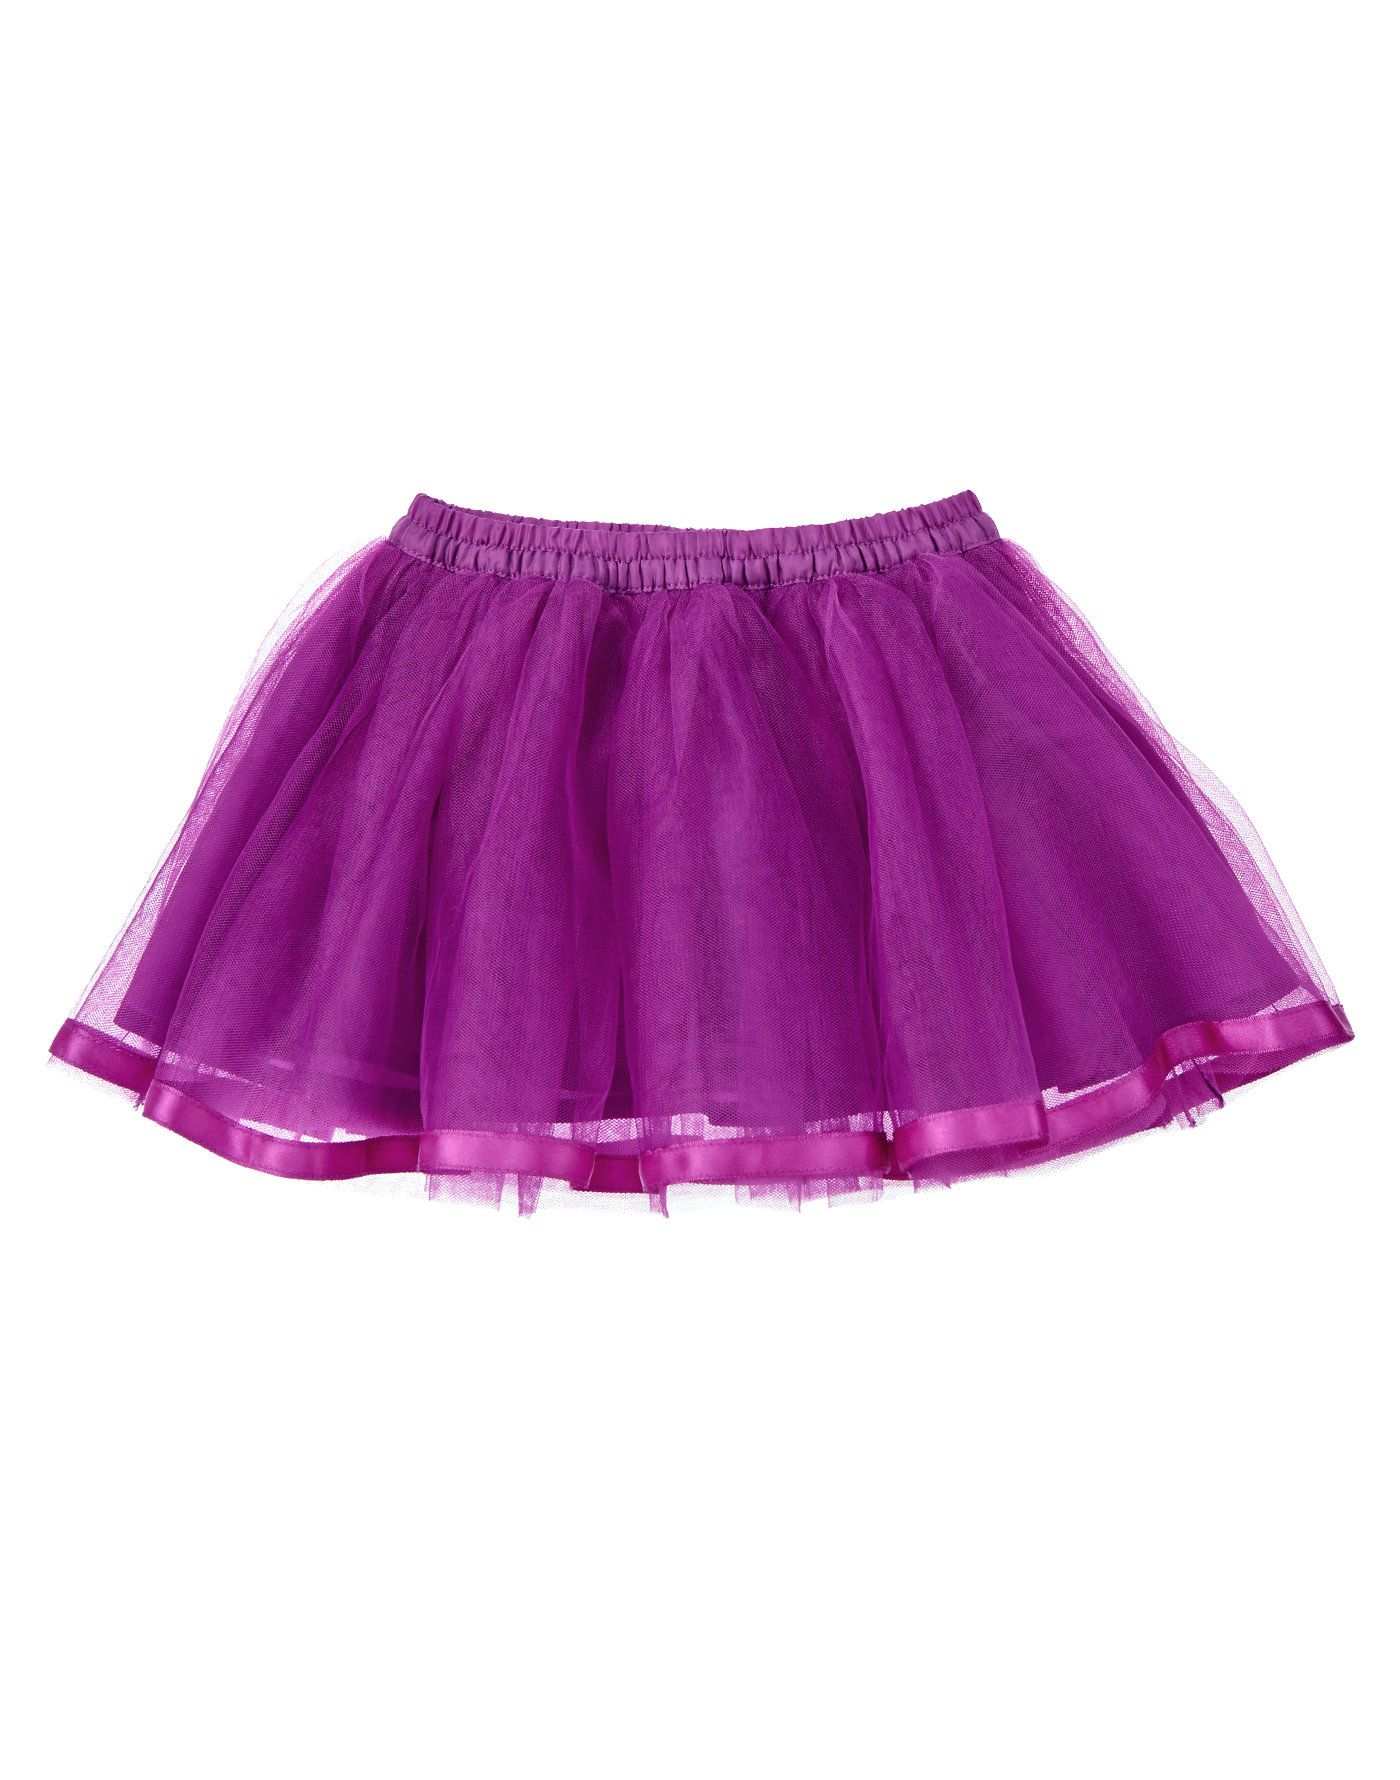 edd0cce855 Twirl away in this girly skirt made from layers of soft tulle. Finished  with elasticized waist and satin ribbon hem.